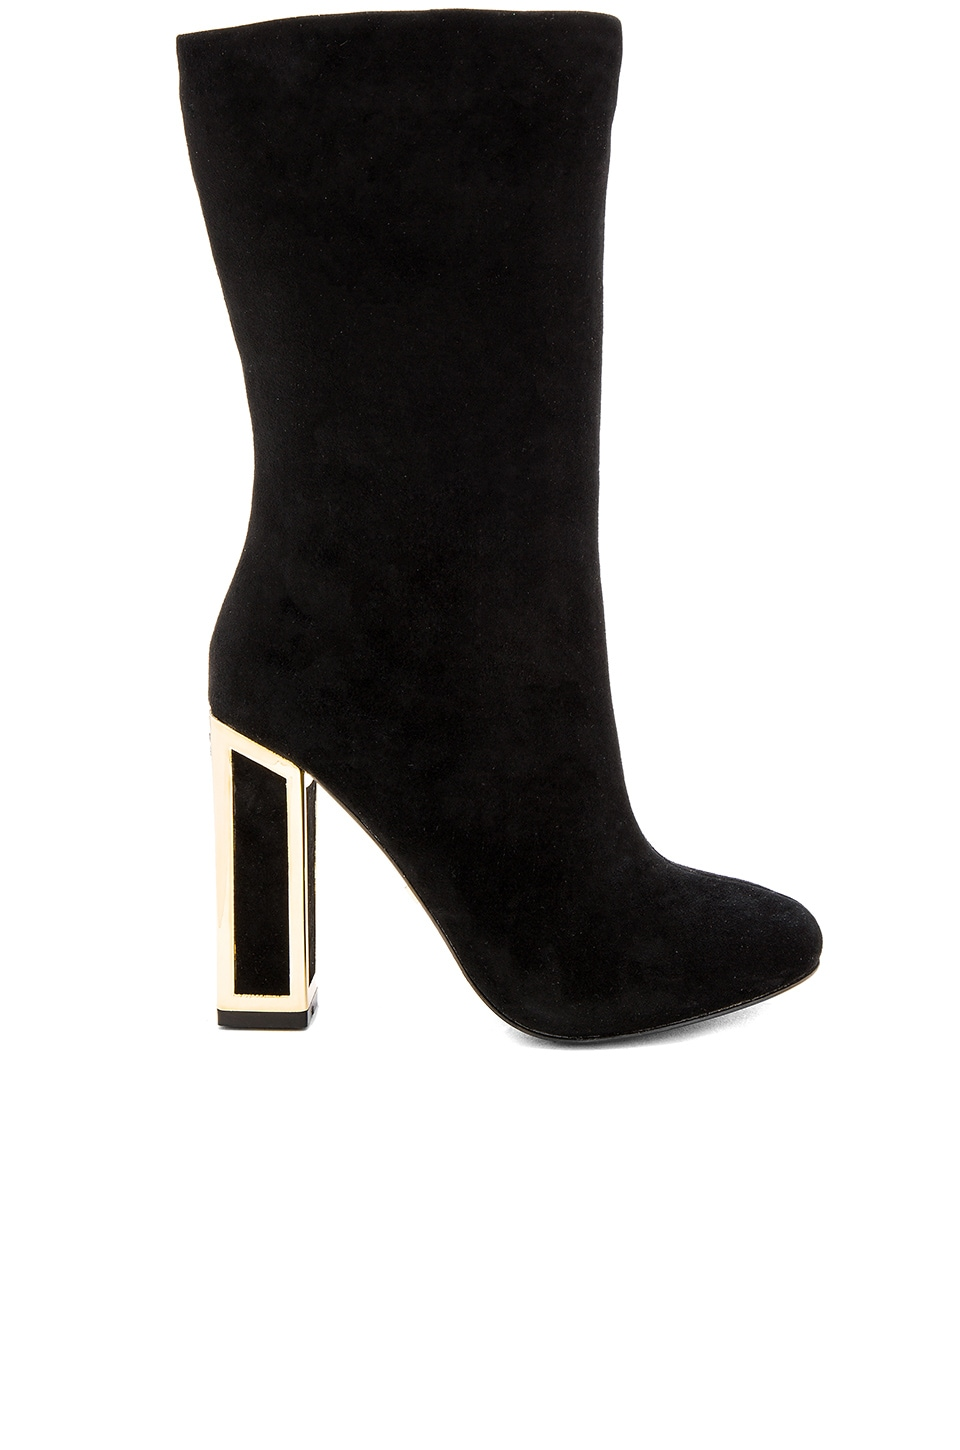 KAT MACONIE Delores Boot in Black Suede